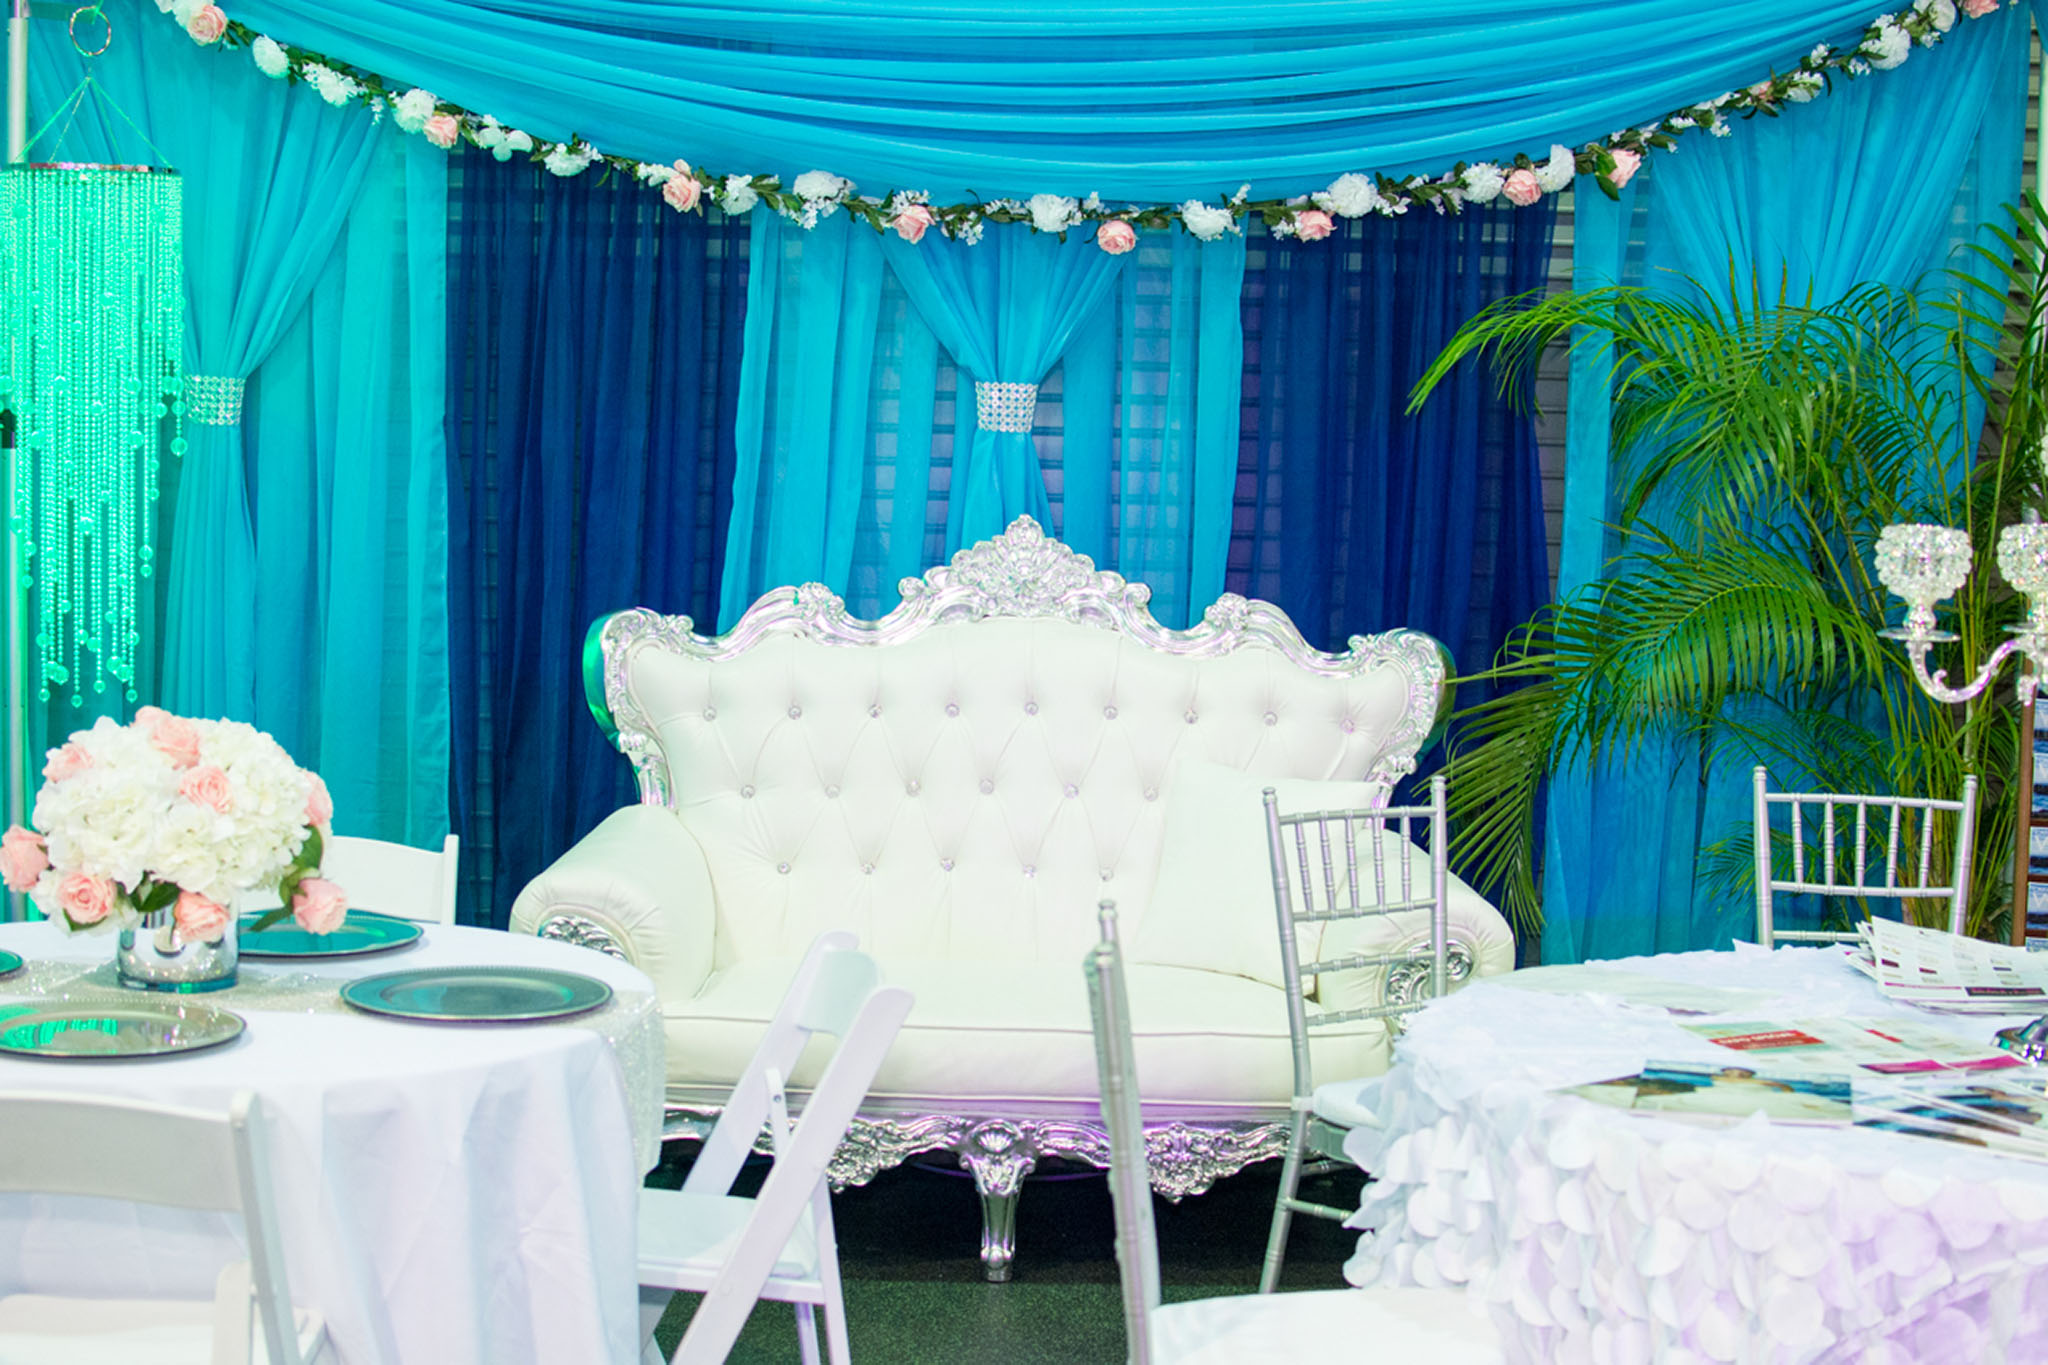 wedding chair covers preston for sale in sri lanka belle weddings and events all your rentals